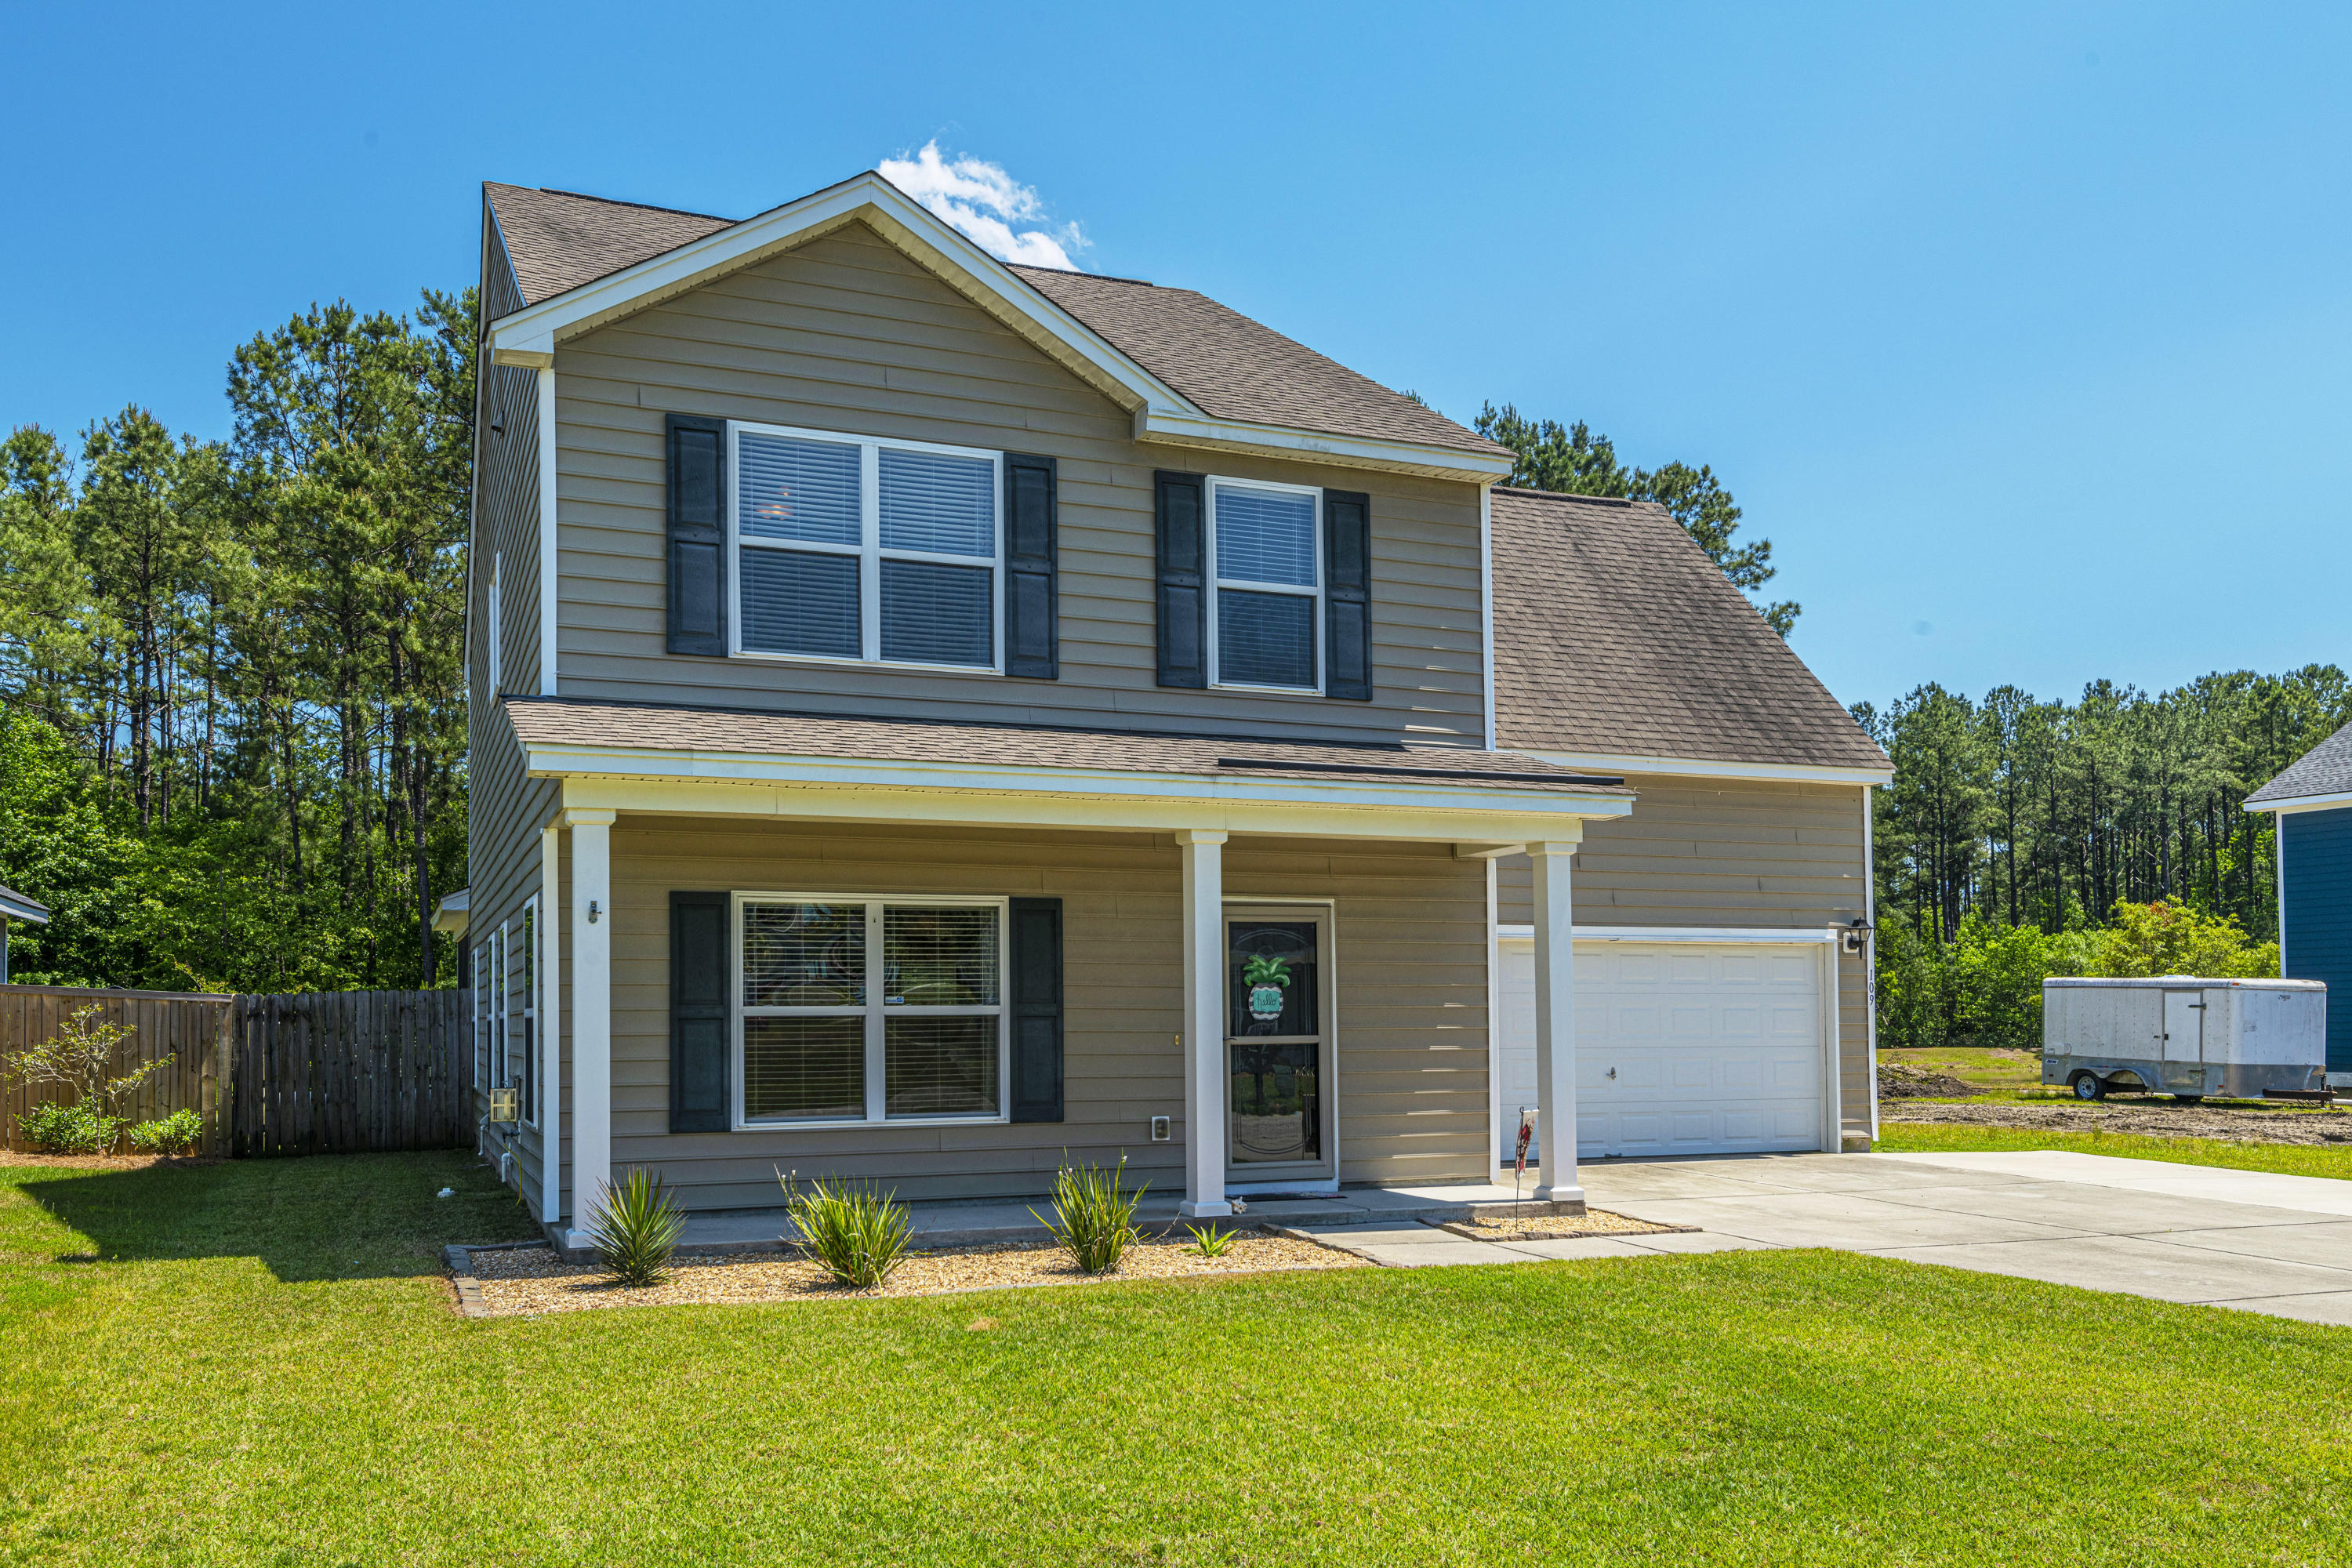 109 Brightwood Drive Huger, Sc 29450